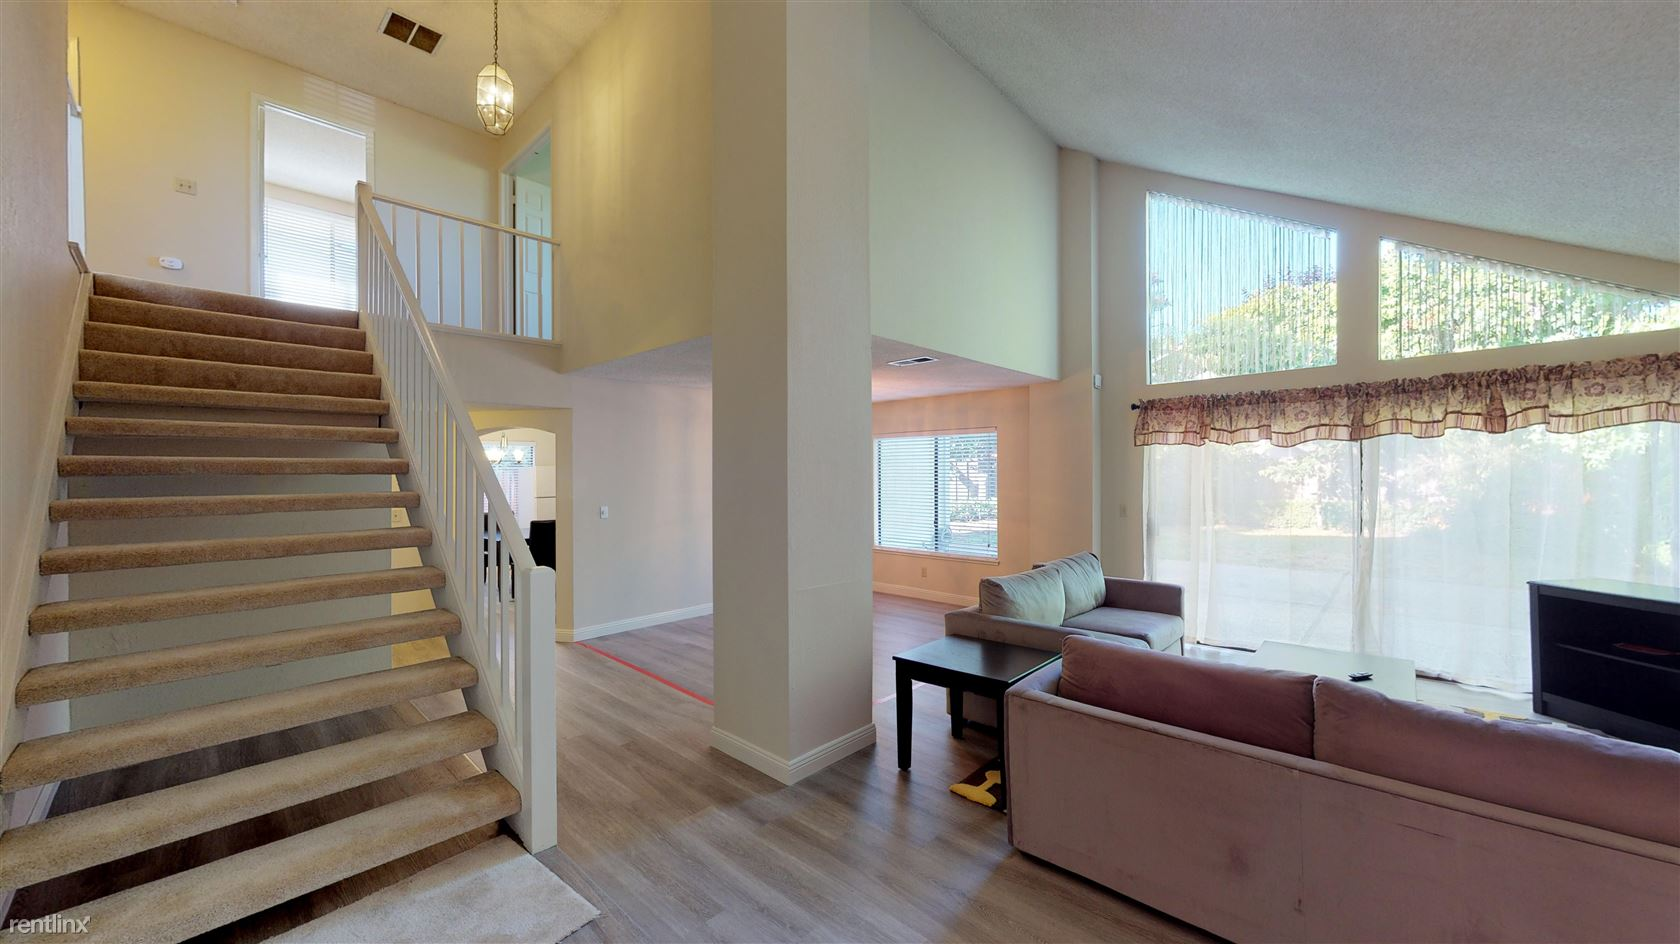 Melbourne St, Pitcairn Dr, Foster City, Foster City, CA - $1,340